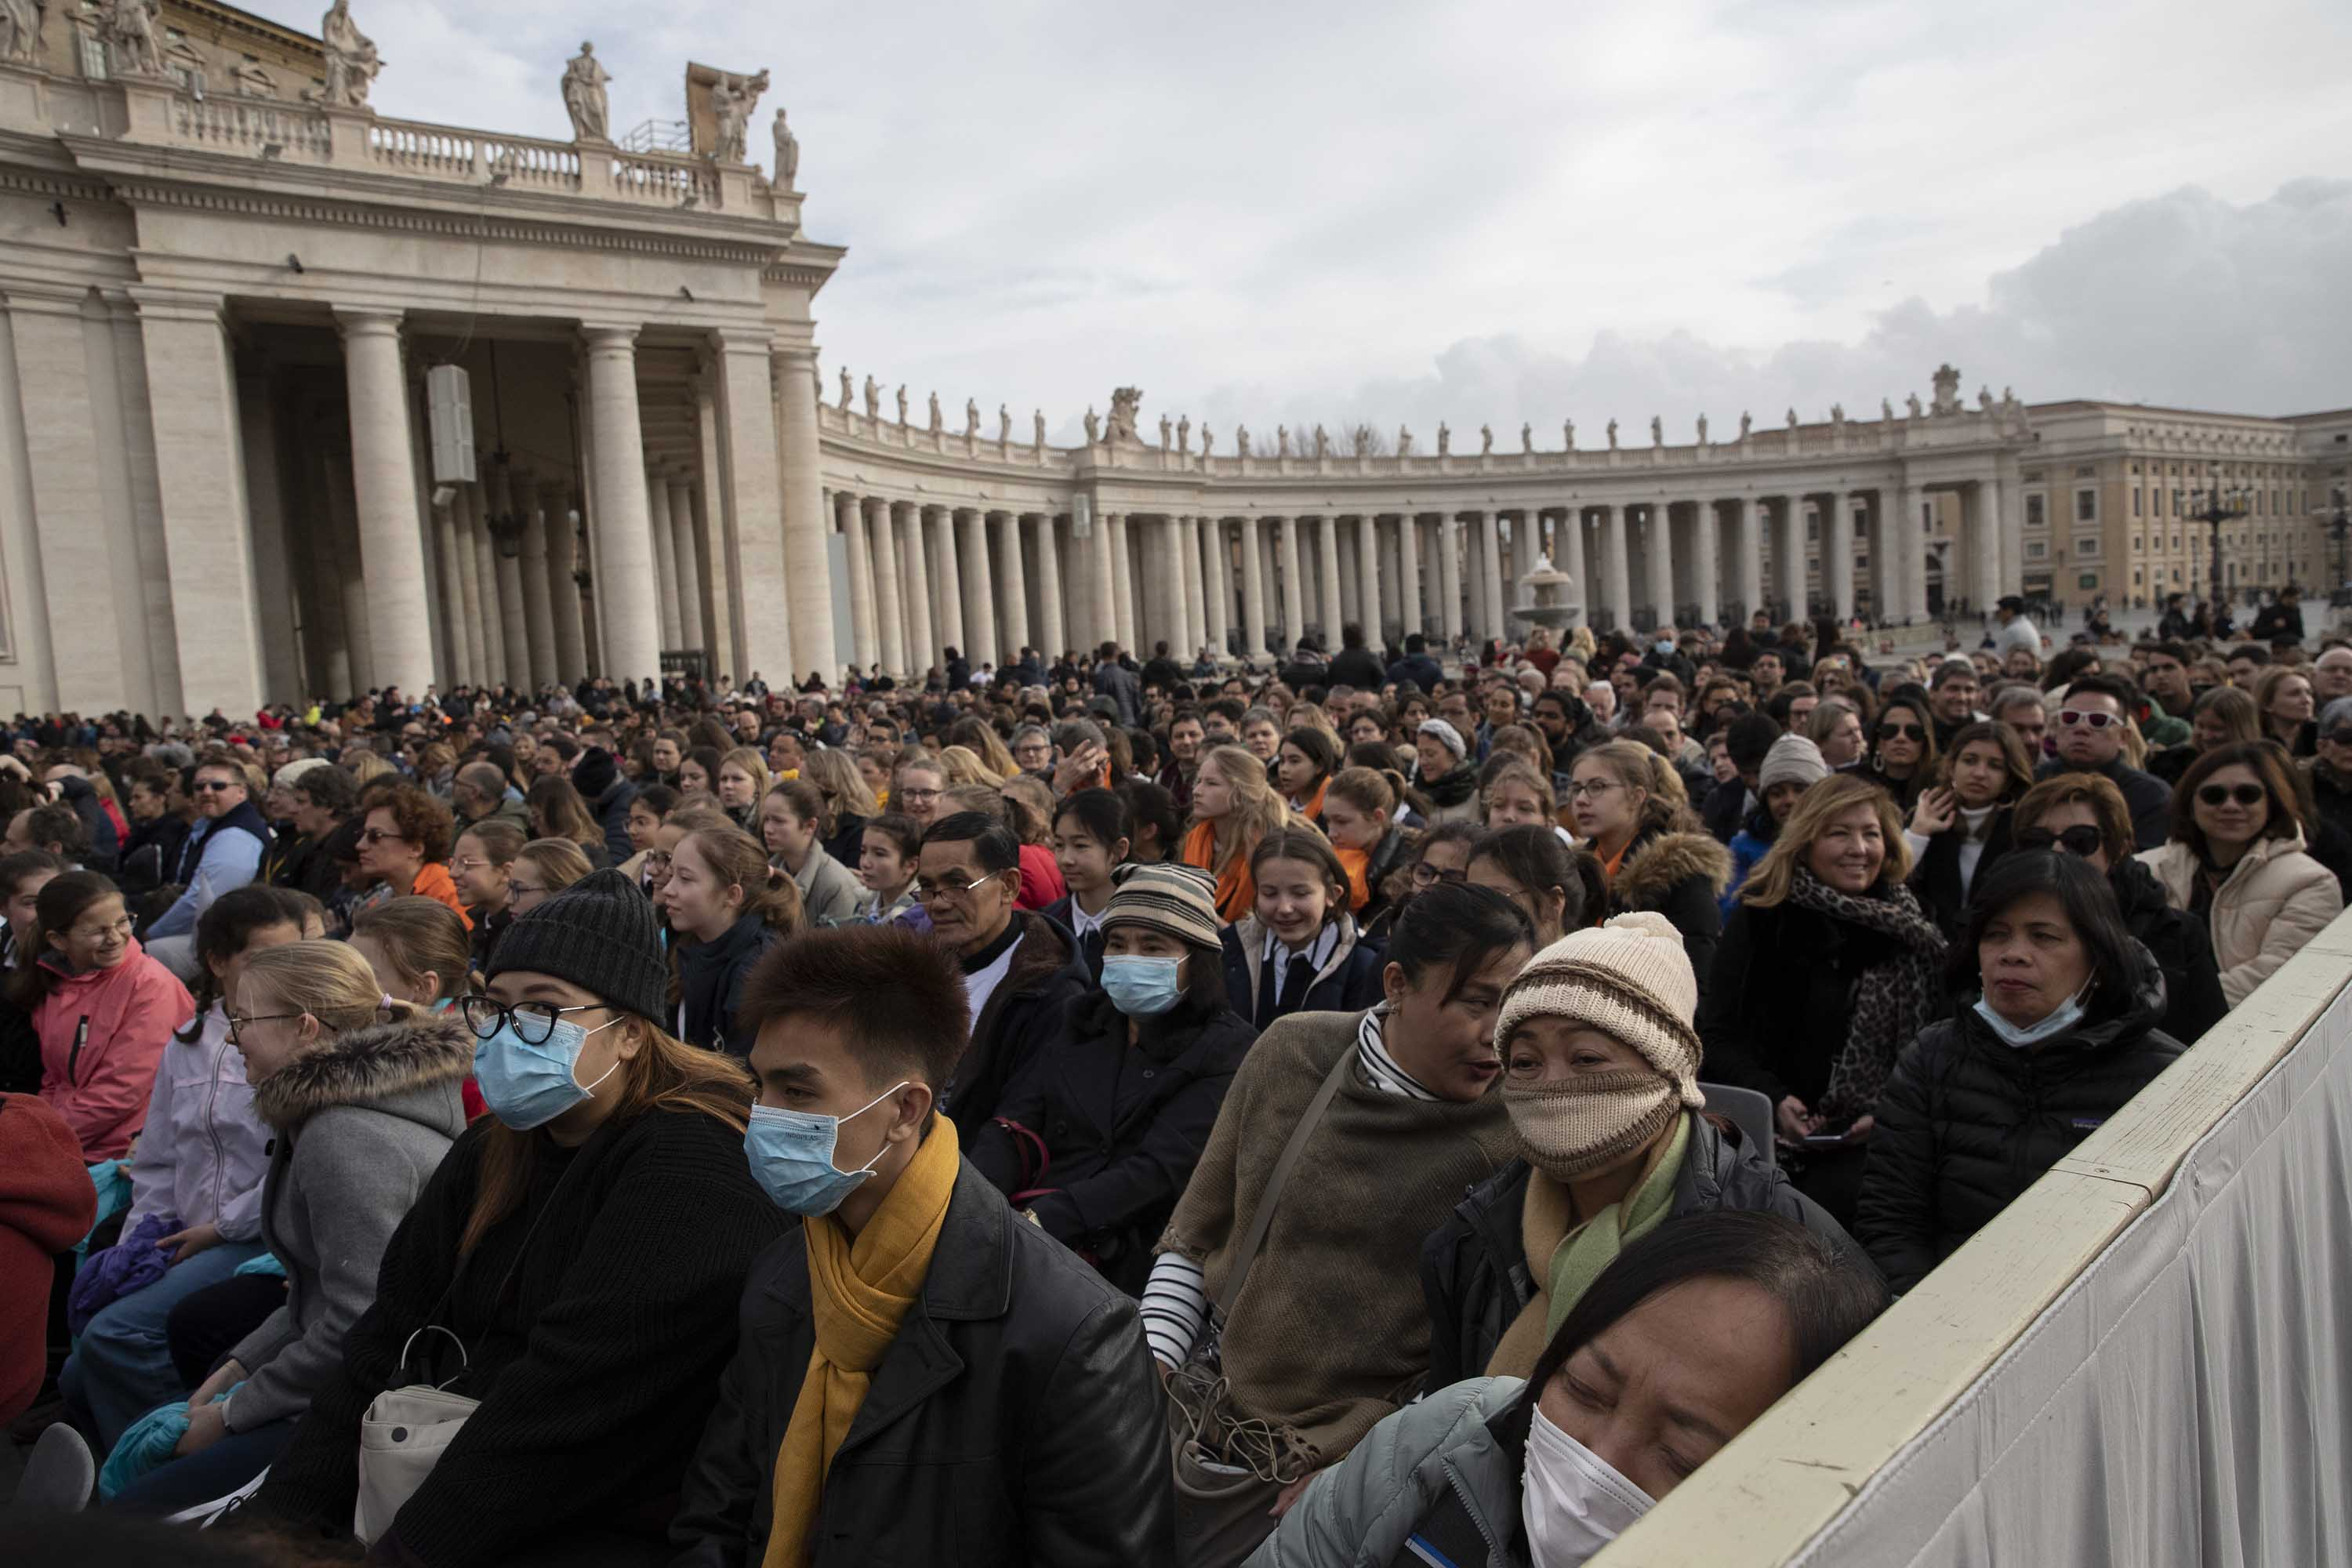 People wear face masks as they wait for Pope Francis' arrival in St. Peter's Square on Wednesday.